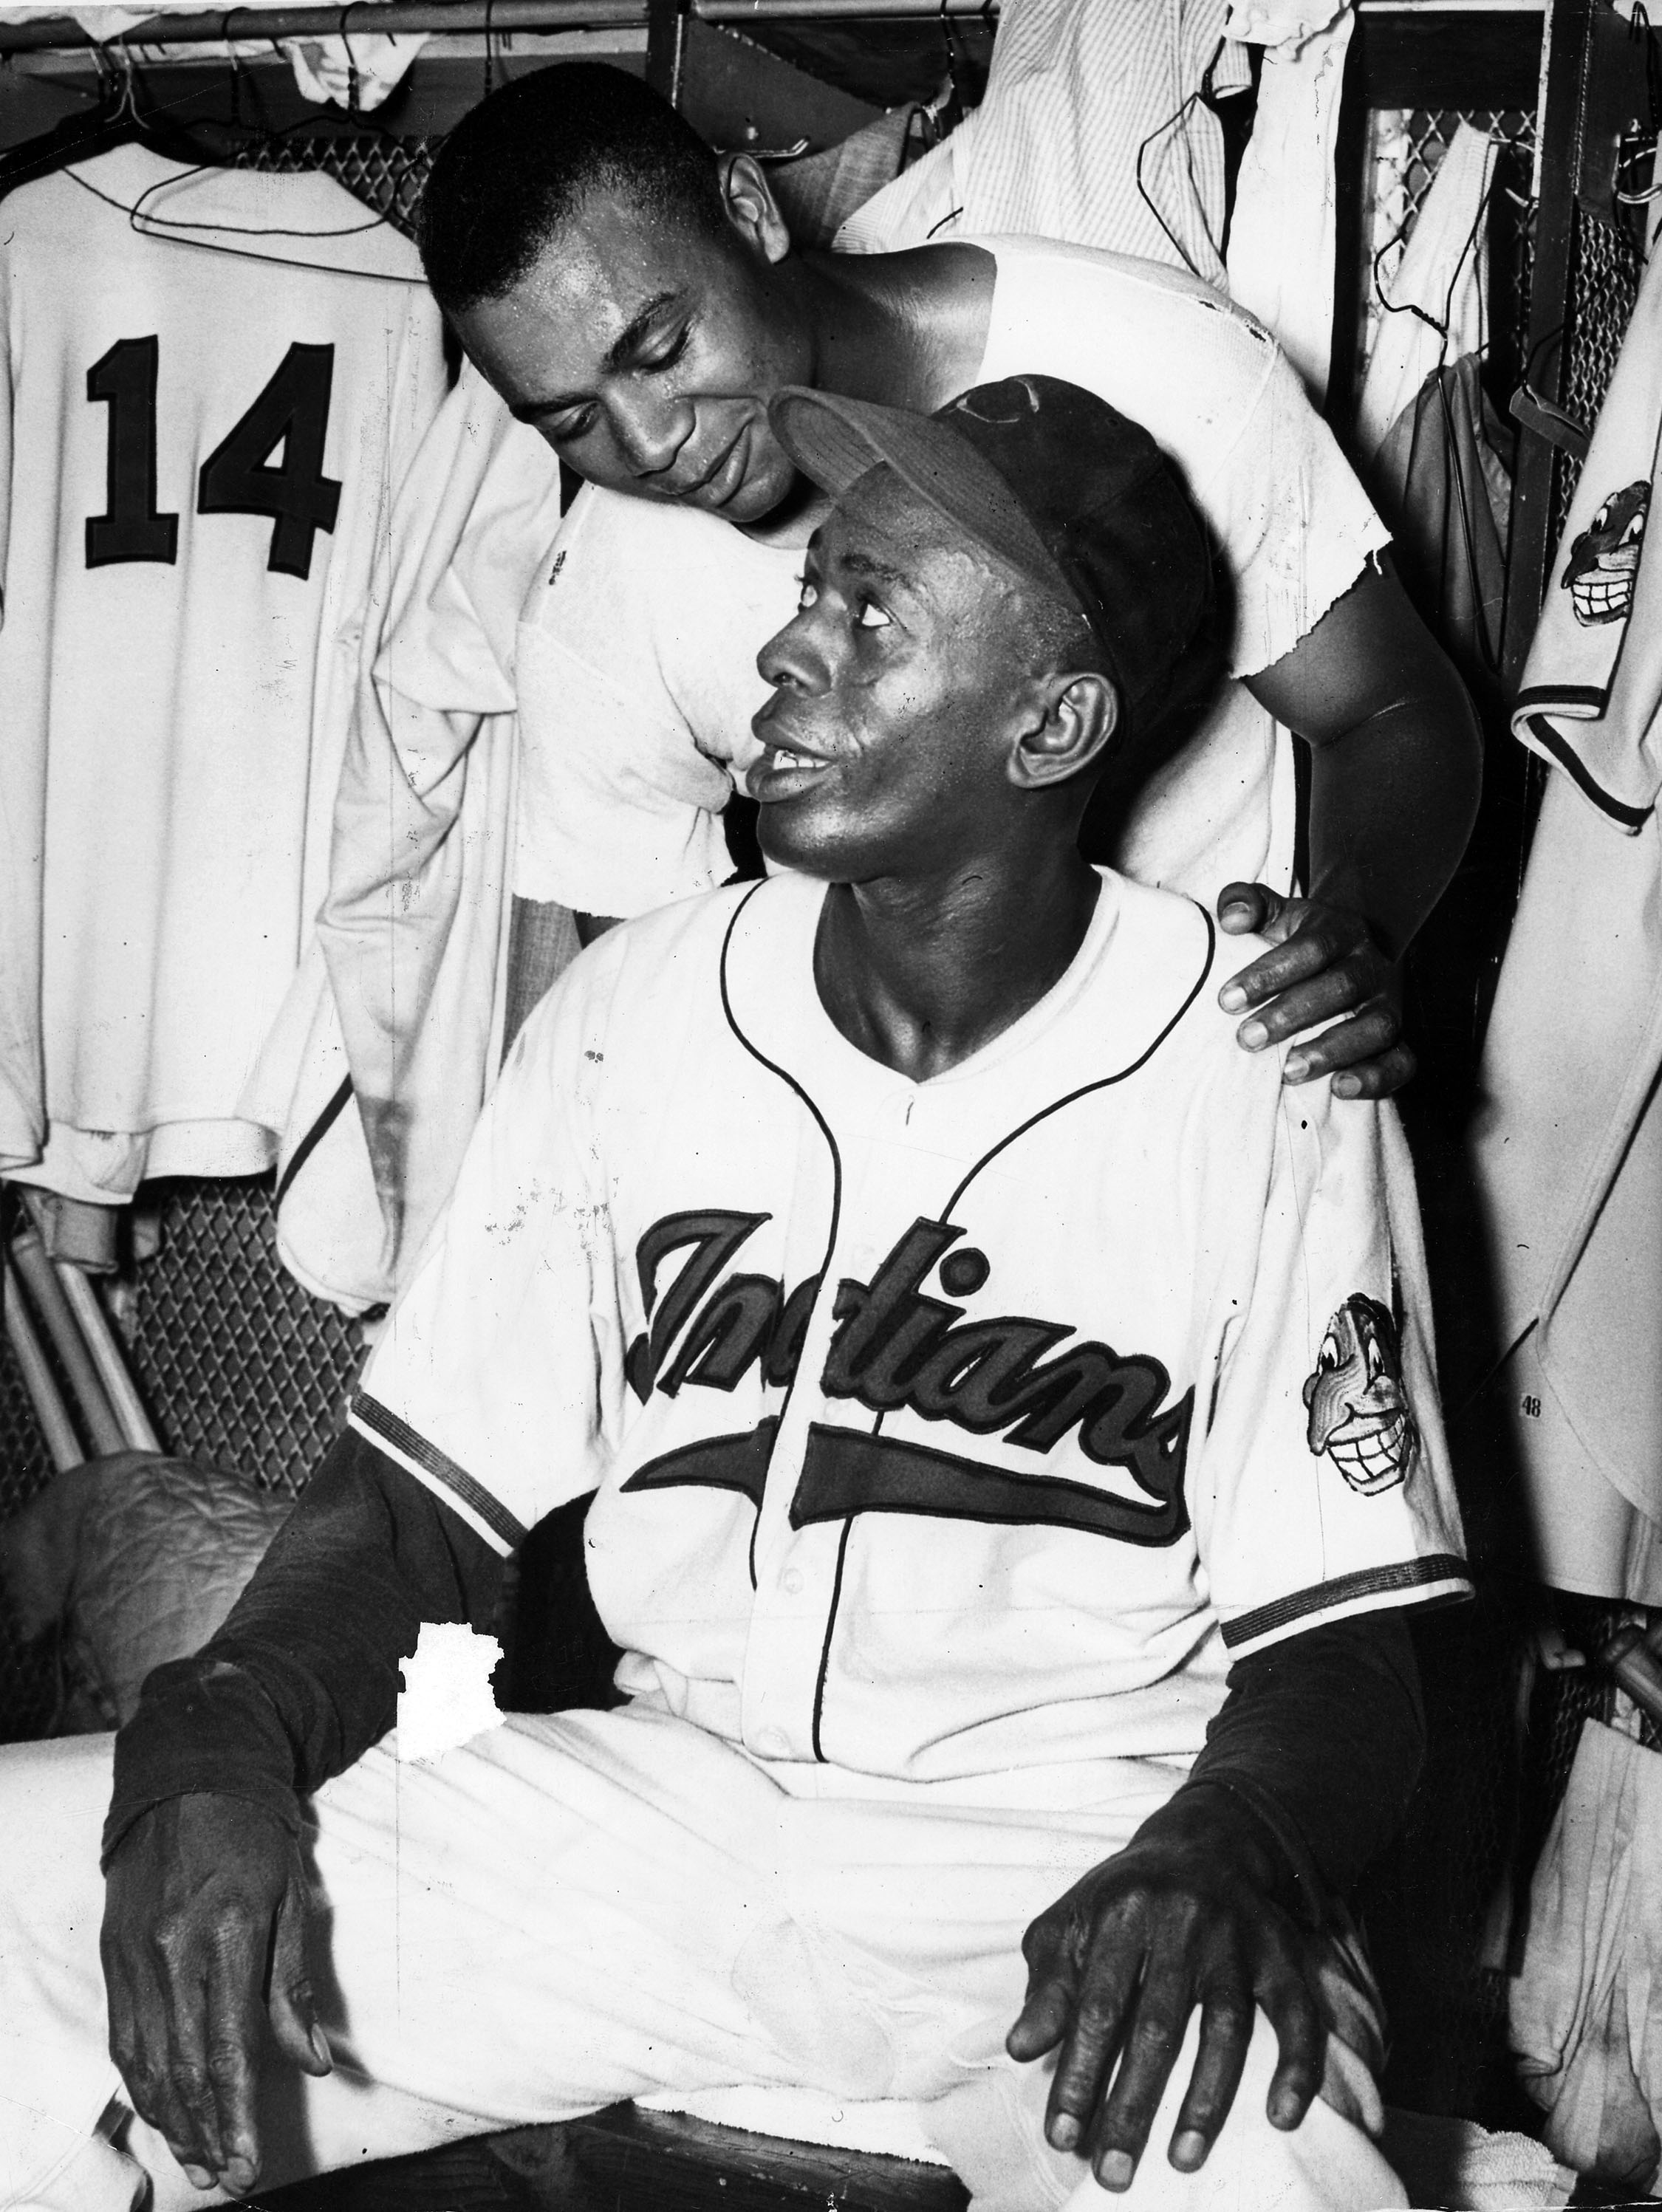 Satchel Paige and Larry Doby from the Cleveland Indians.